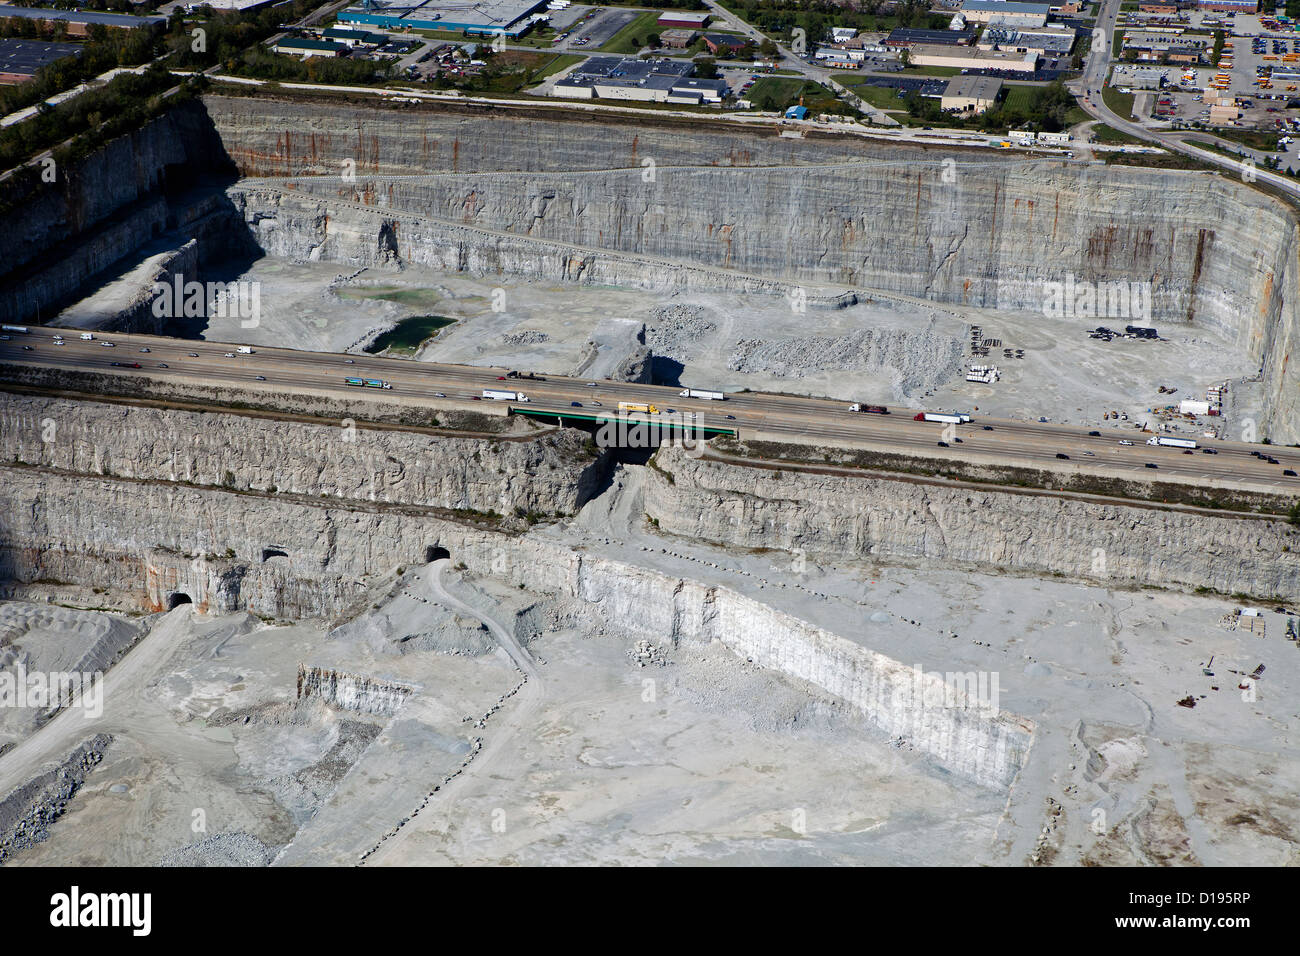 aerial photograph Thorton Quarry, Thorton, Illinois - Stock Image